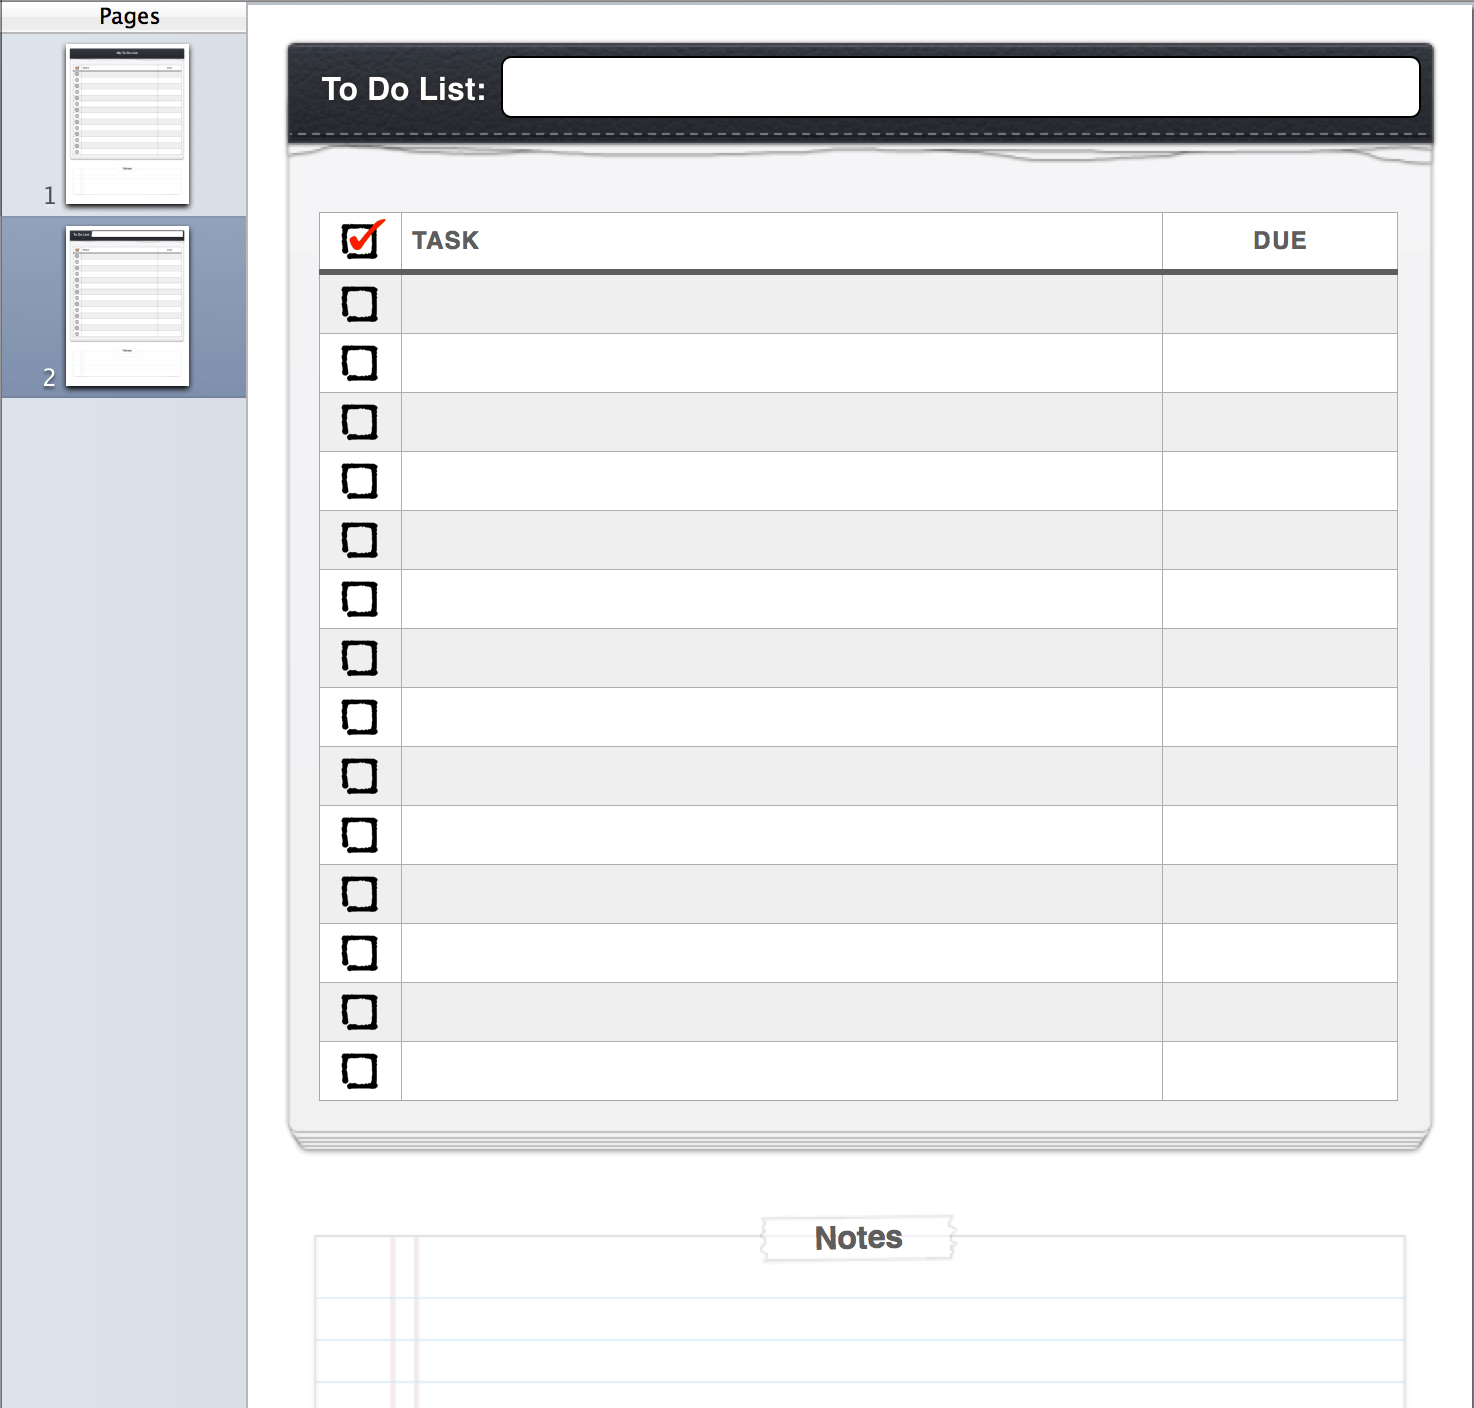 graphic relating to Pages Checklist Template identify In the direction of Do Listing Template